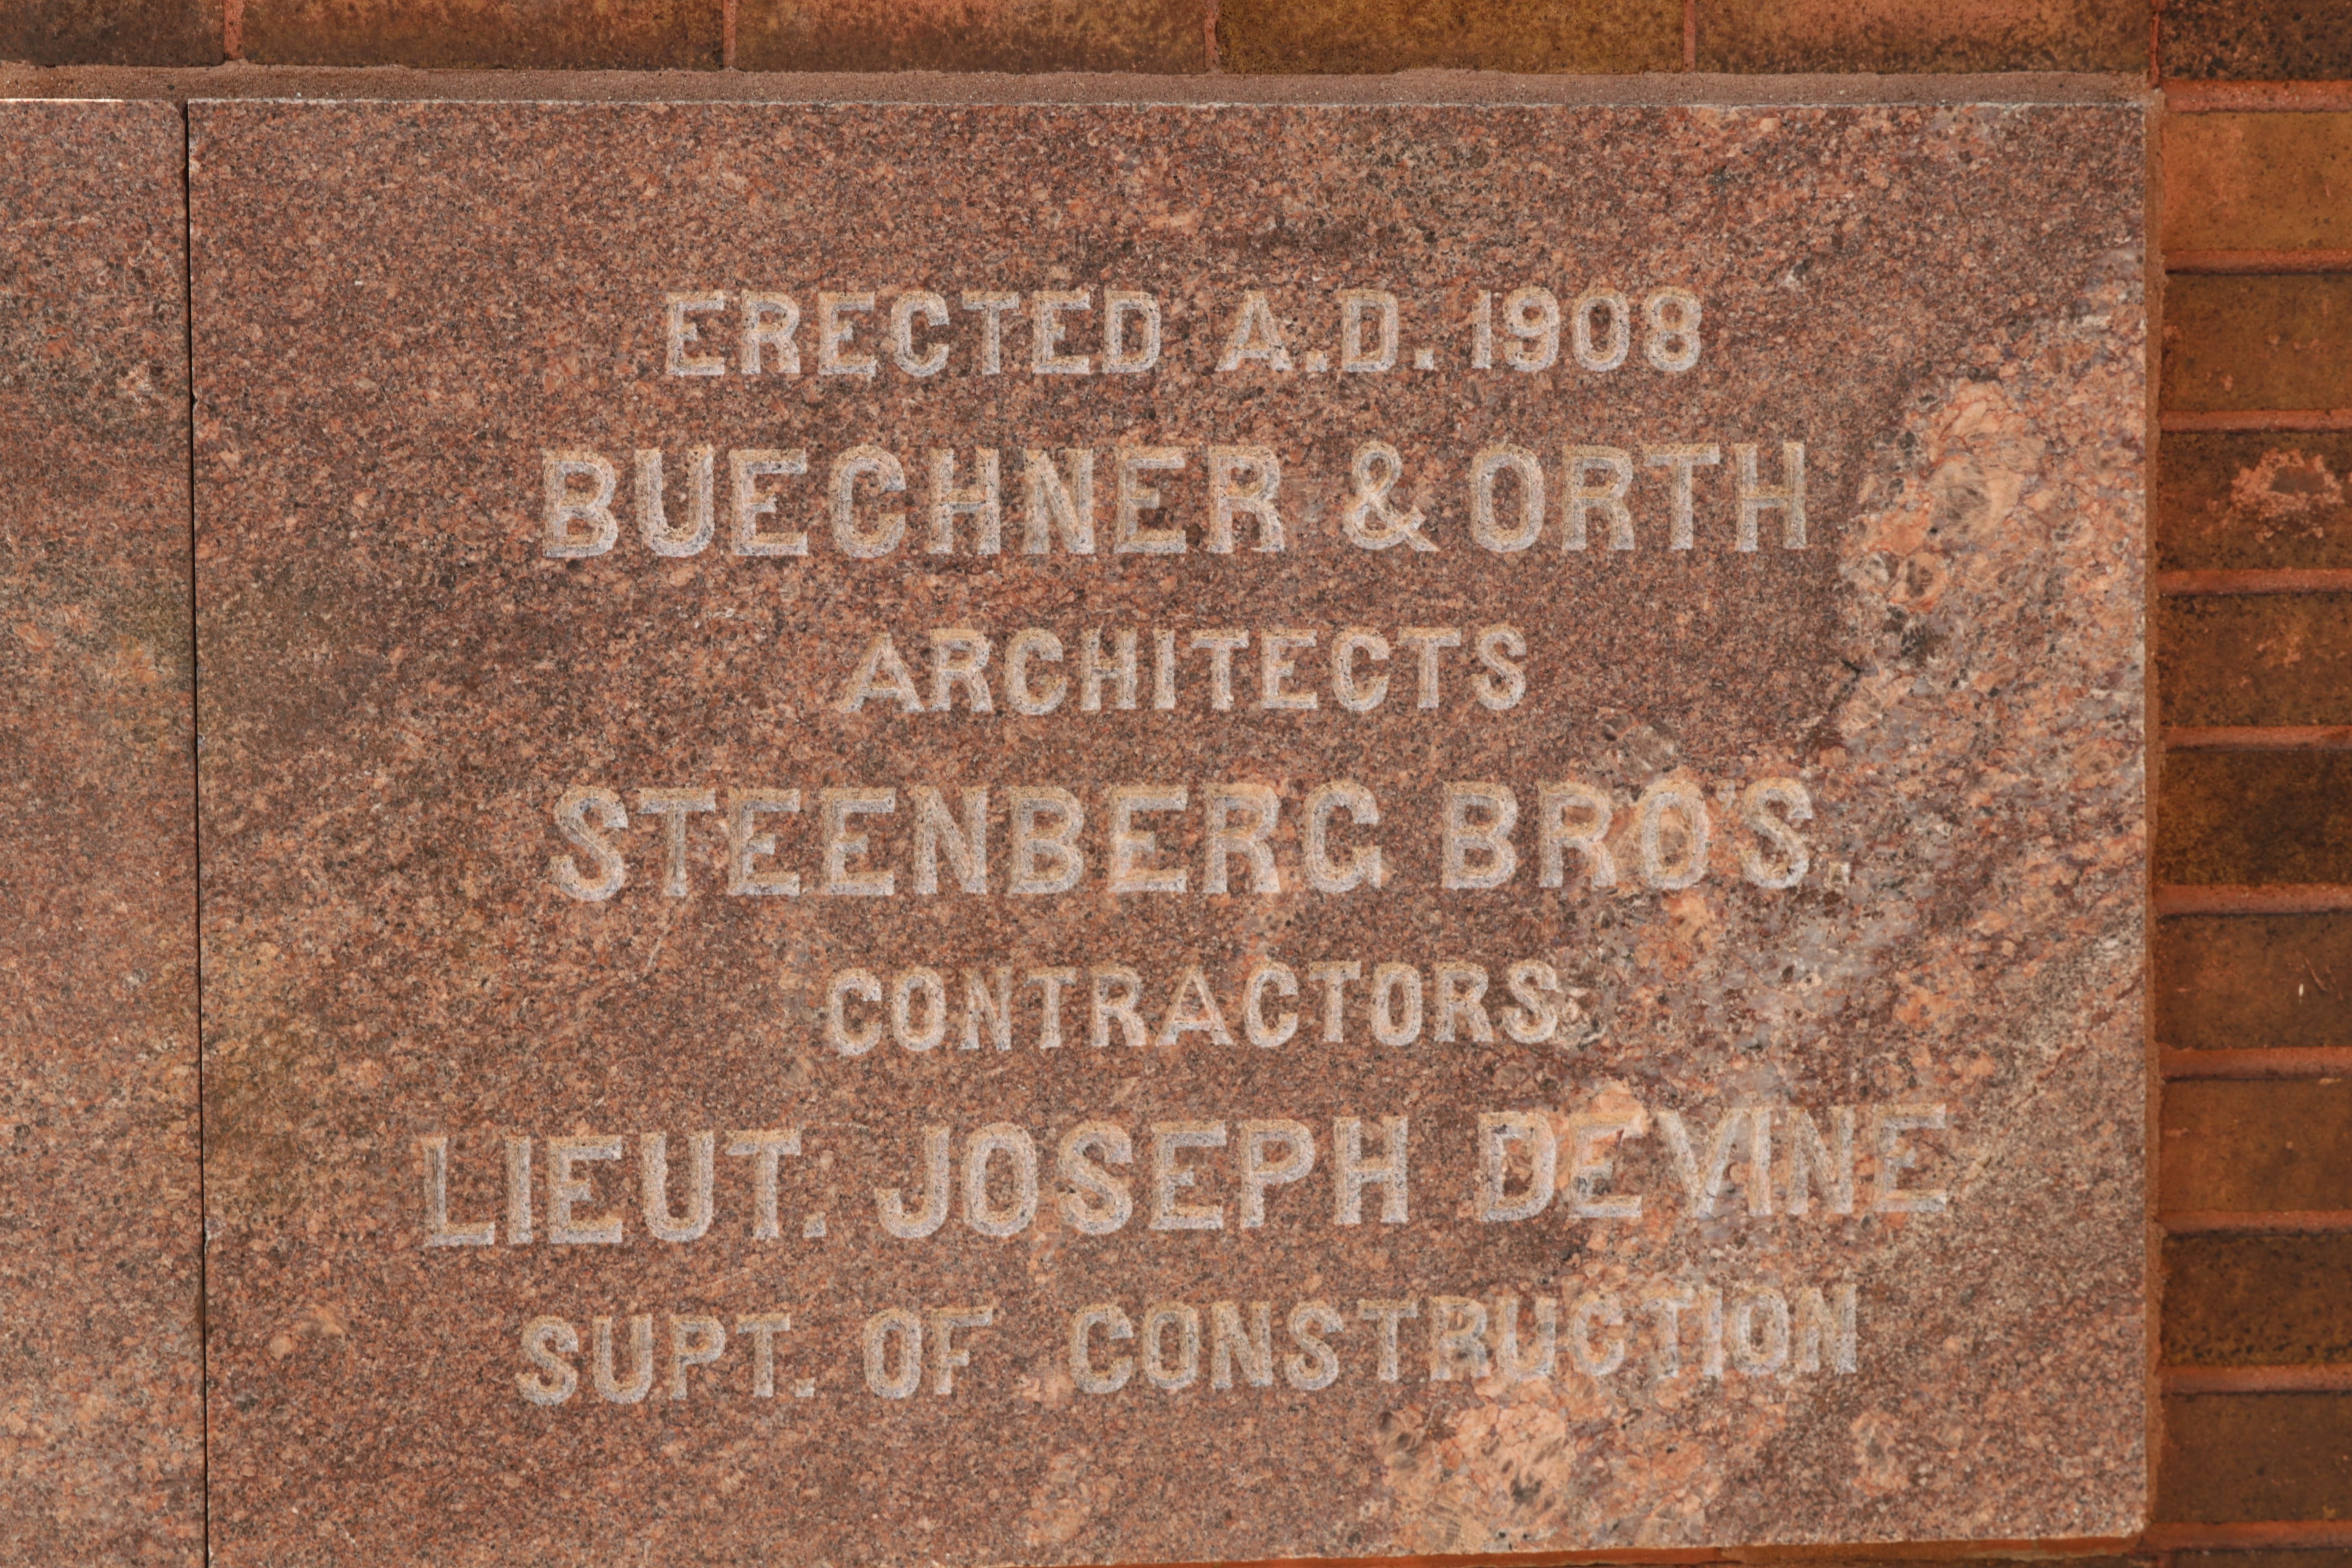 The designs of Station 18 and two other fire stations are attributed to the architectural firm of Buechner & Orth. The architects drew plans for multiple homes around Saint Paul, and was most noted for designing courthouses and theaters in the upper Midwest.